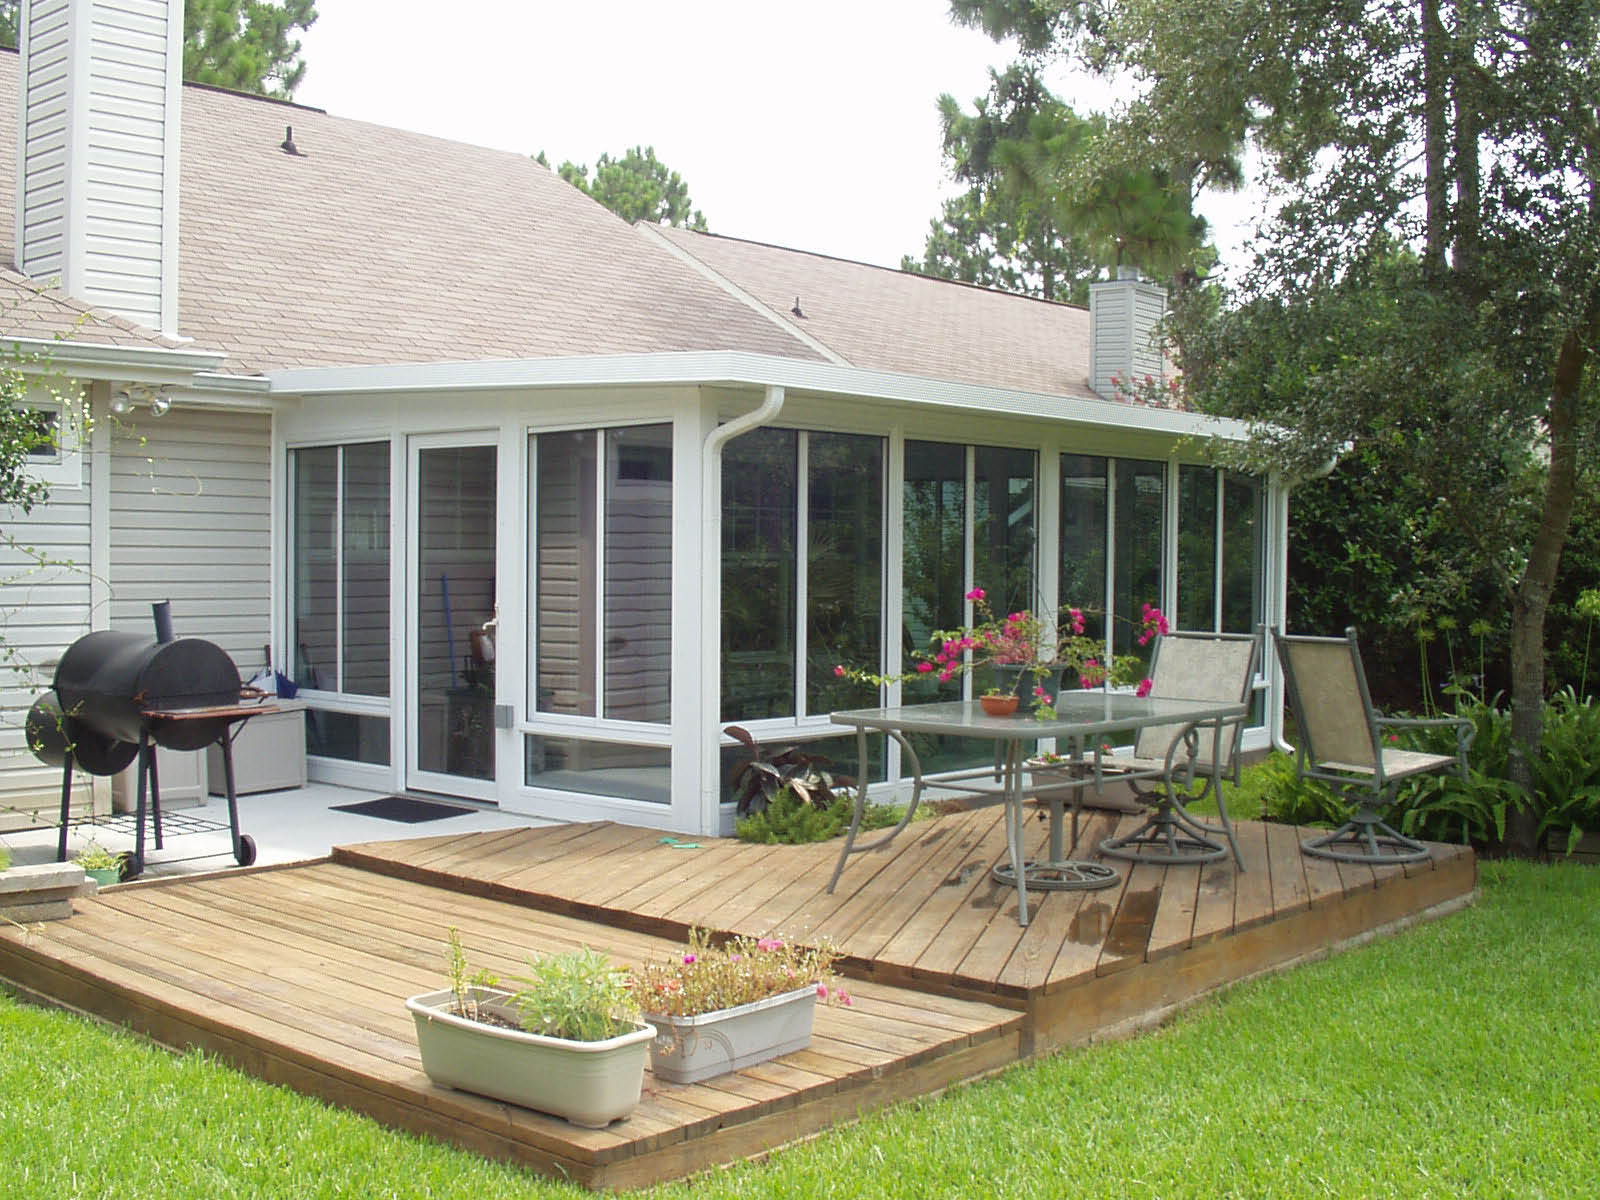 photo of TEMO porch enclosure from California Sunrooms in Sacramento, CA